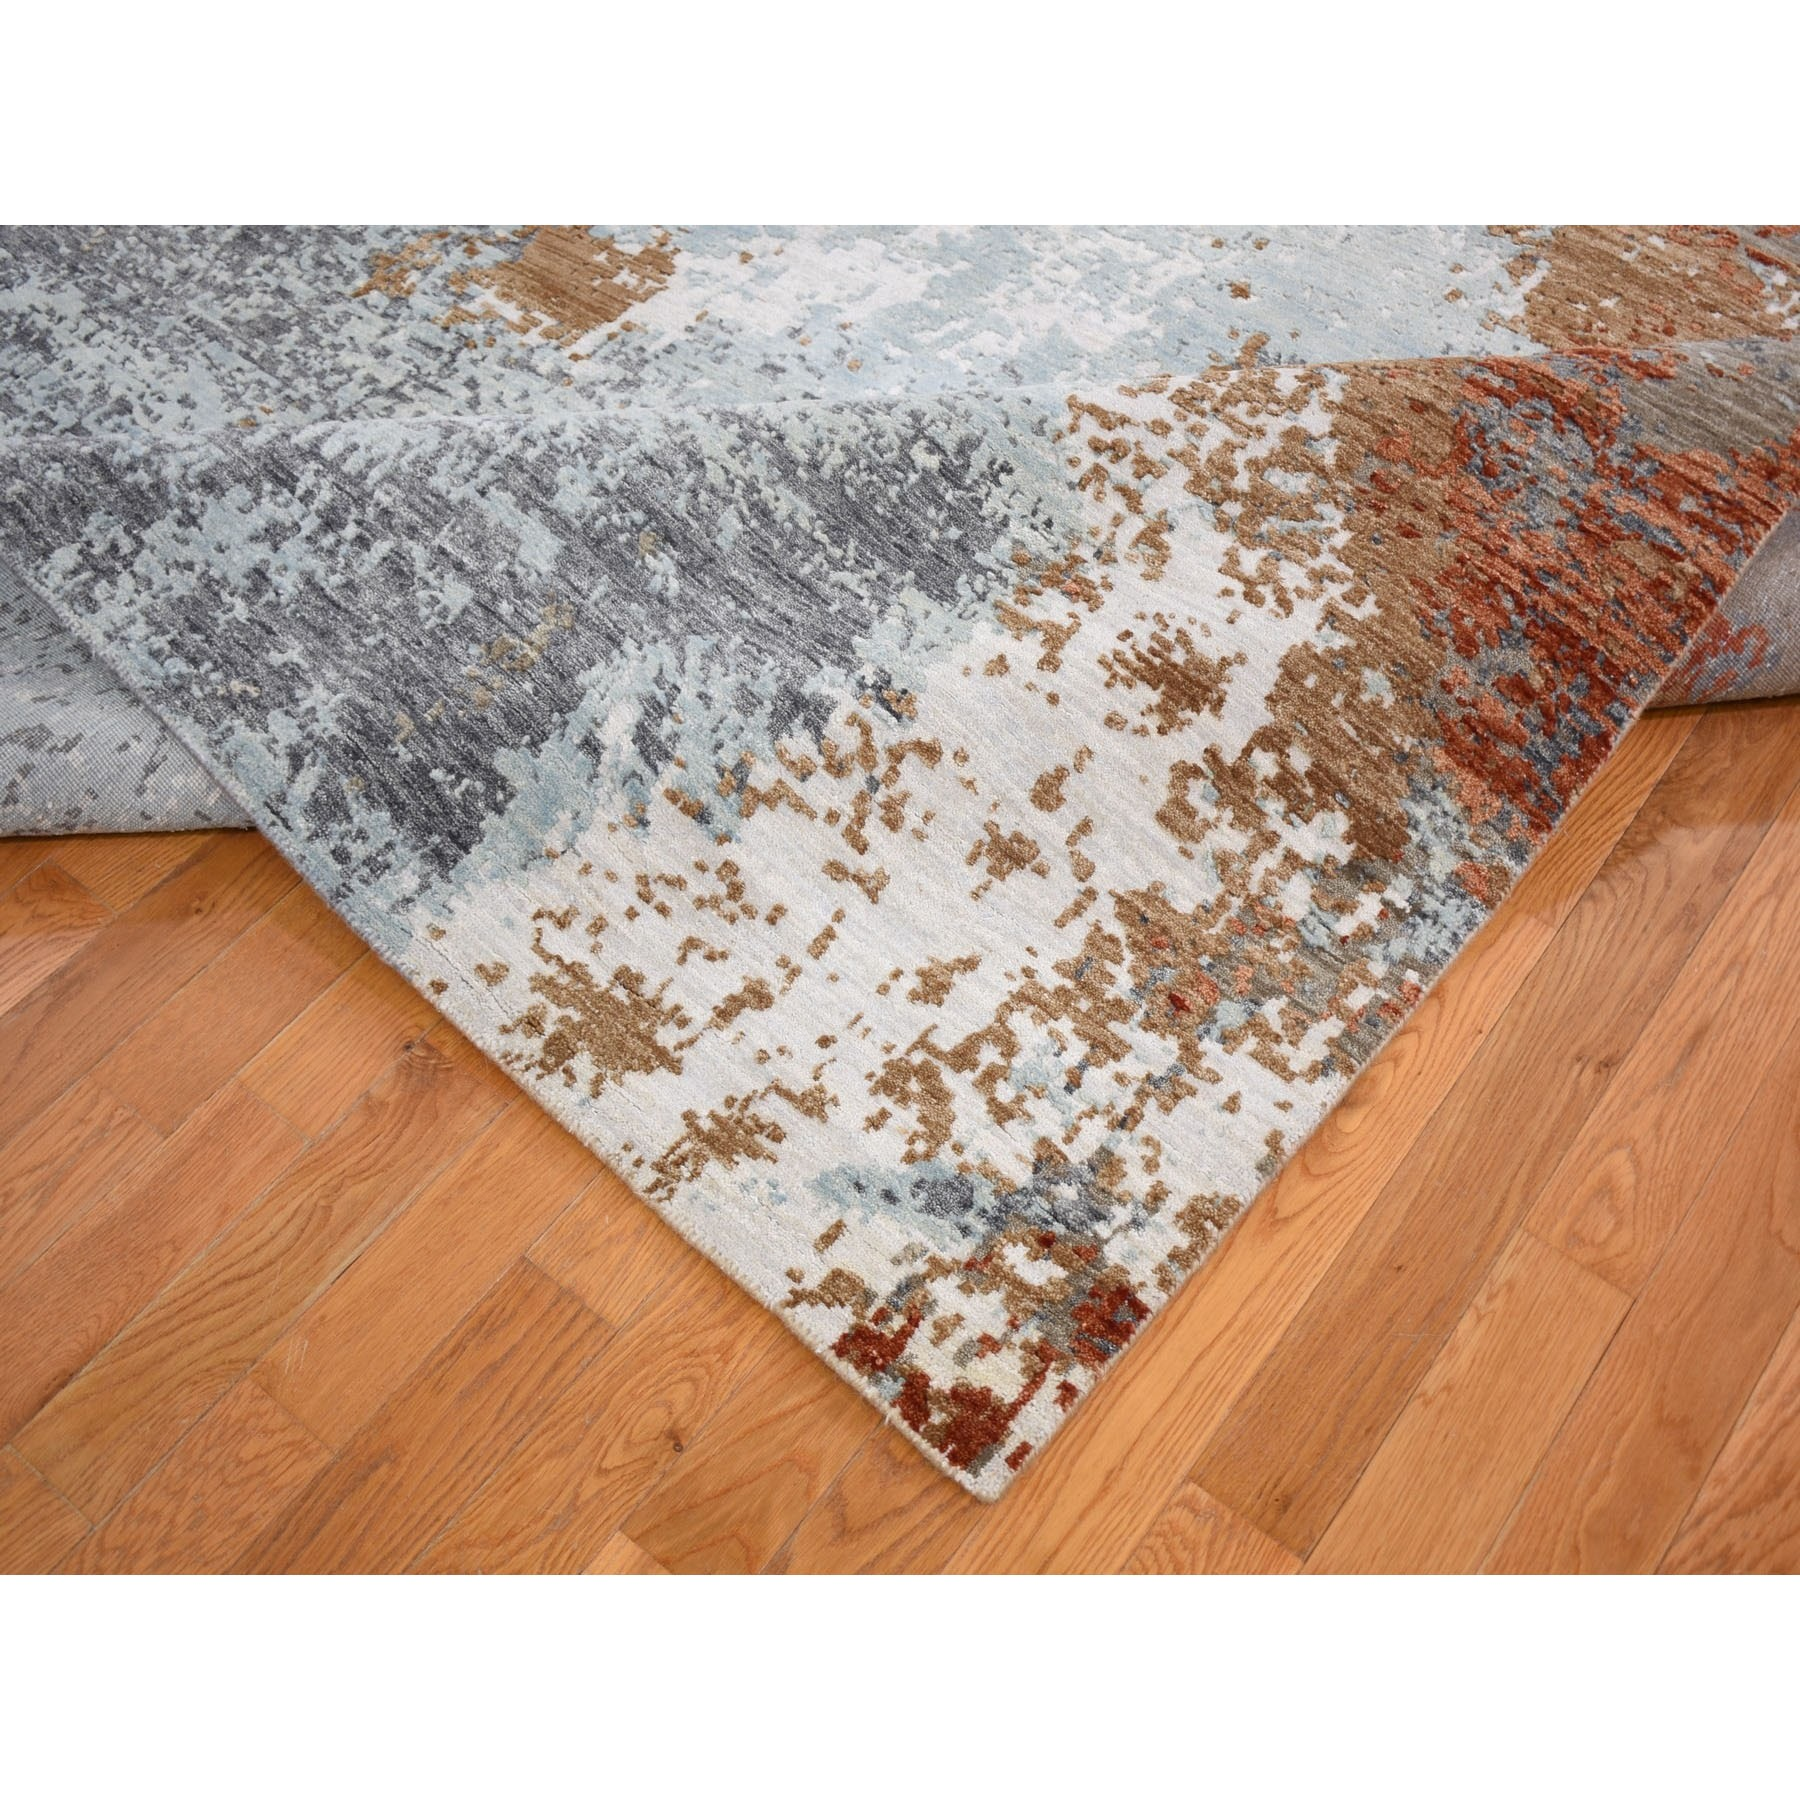 9'x12' Terracotta Abstract Design Wool And Silk Hi-Low Pile Denser Weave Hand Knotted Oriental Rug